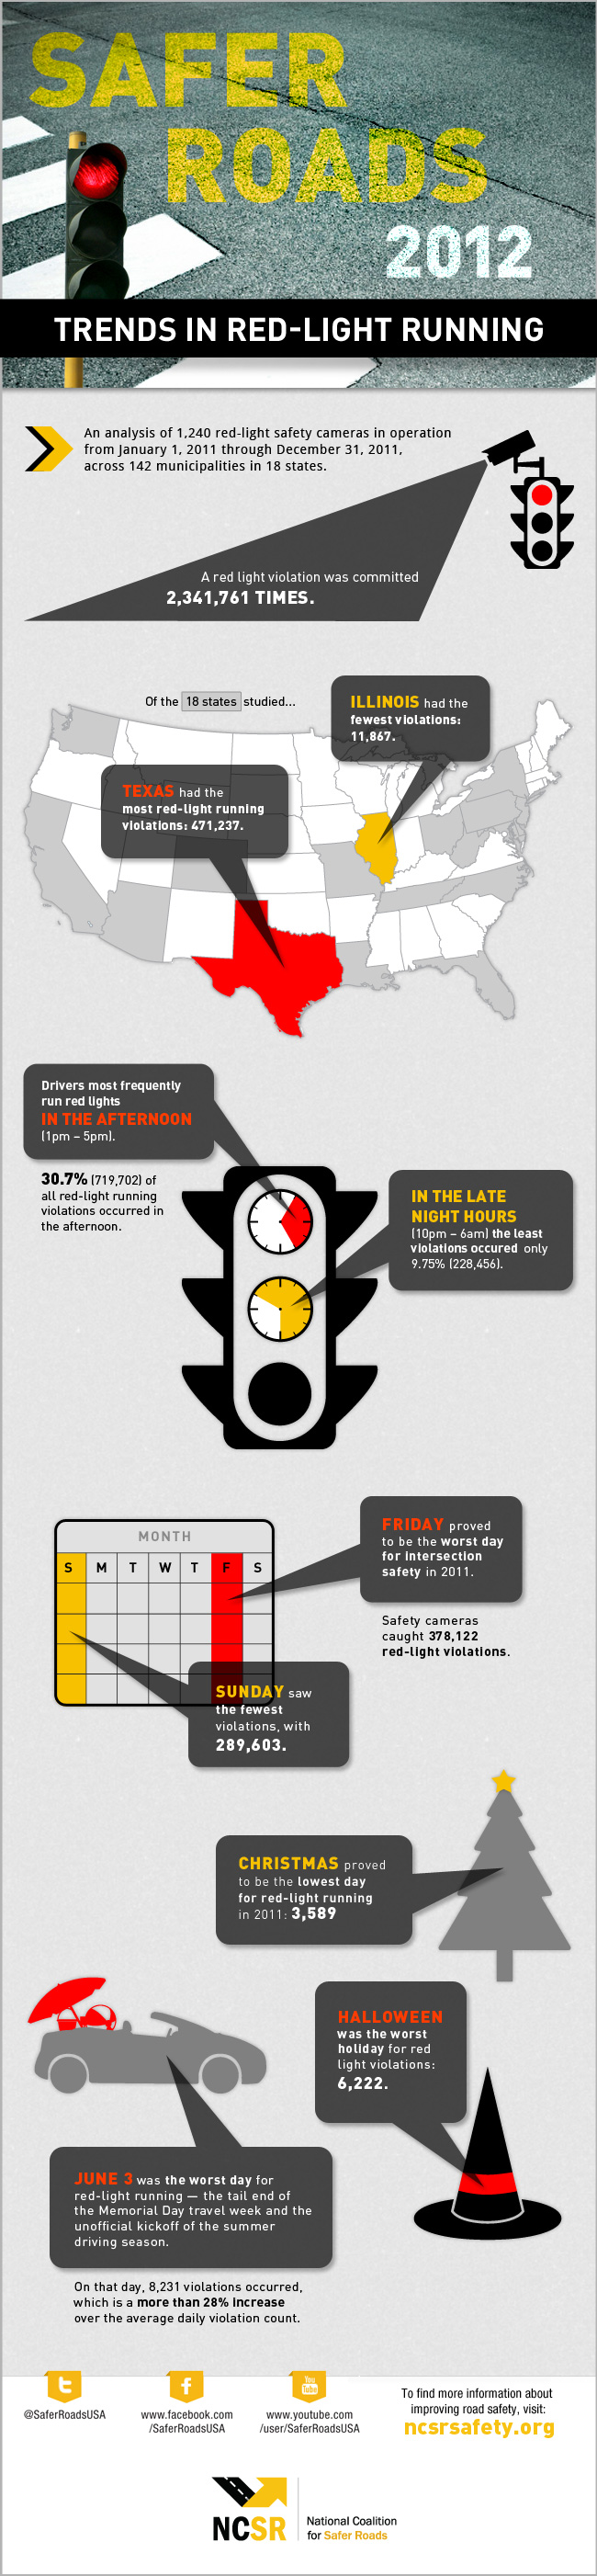 NCSR Red Light Running Infographic